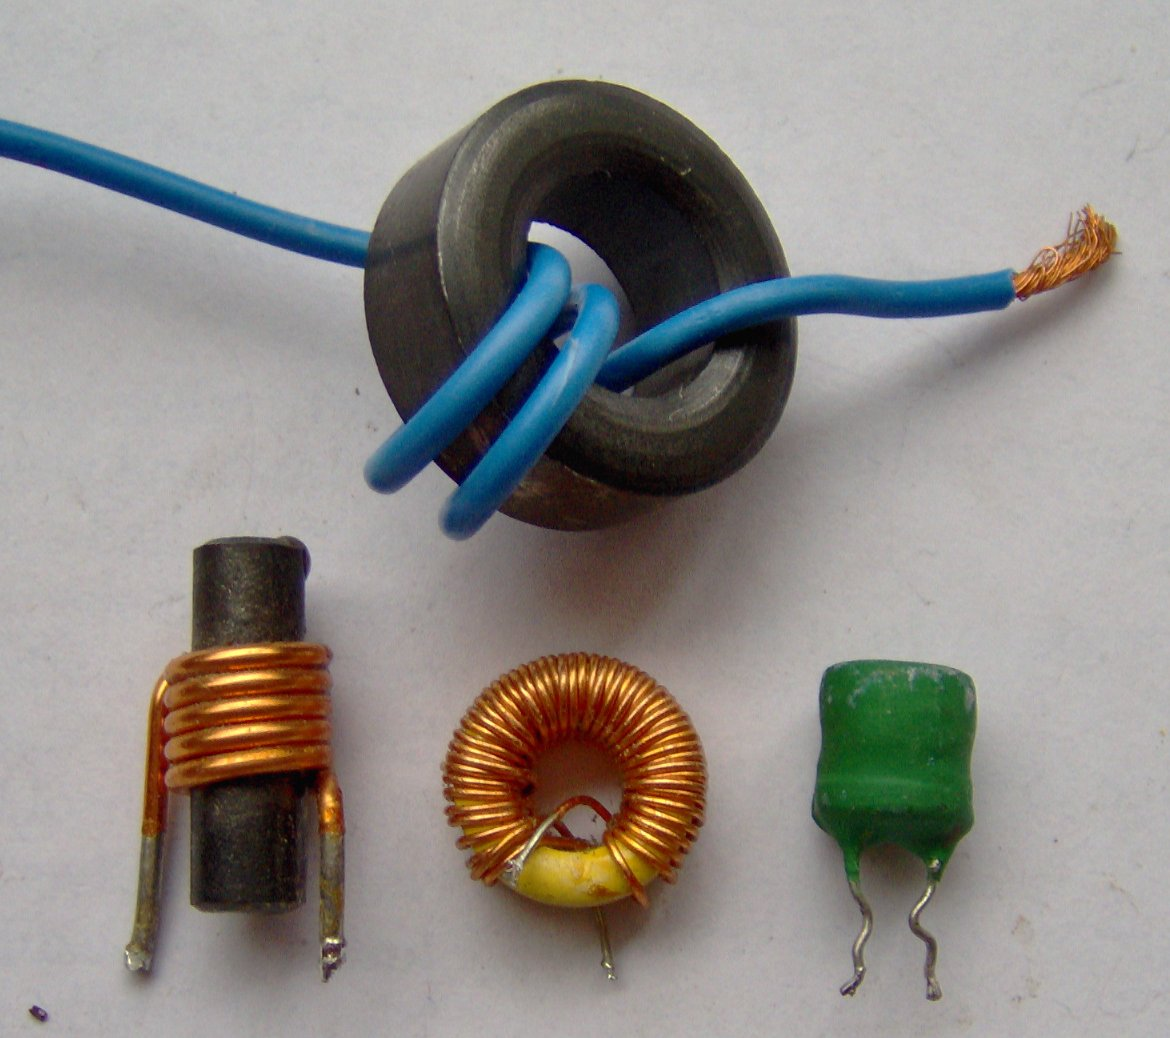 Inductor Wikipedia Thorough And Provides A Great Introduction To Electric Circuits